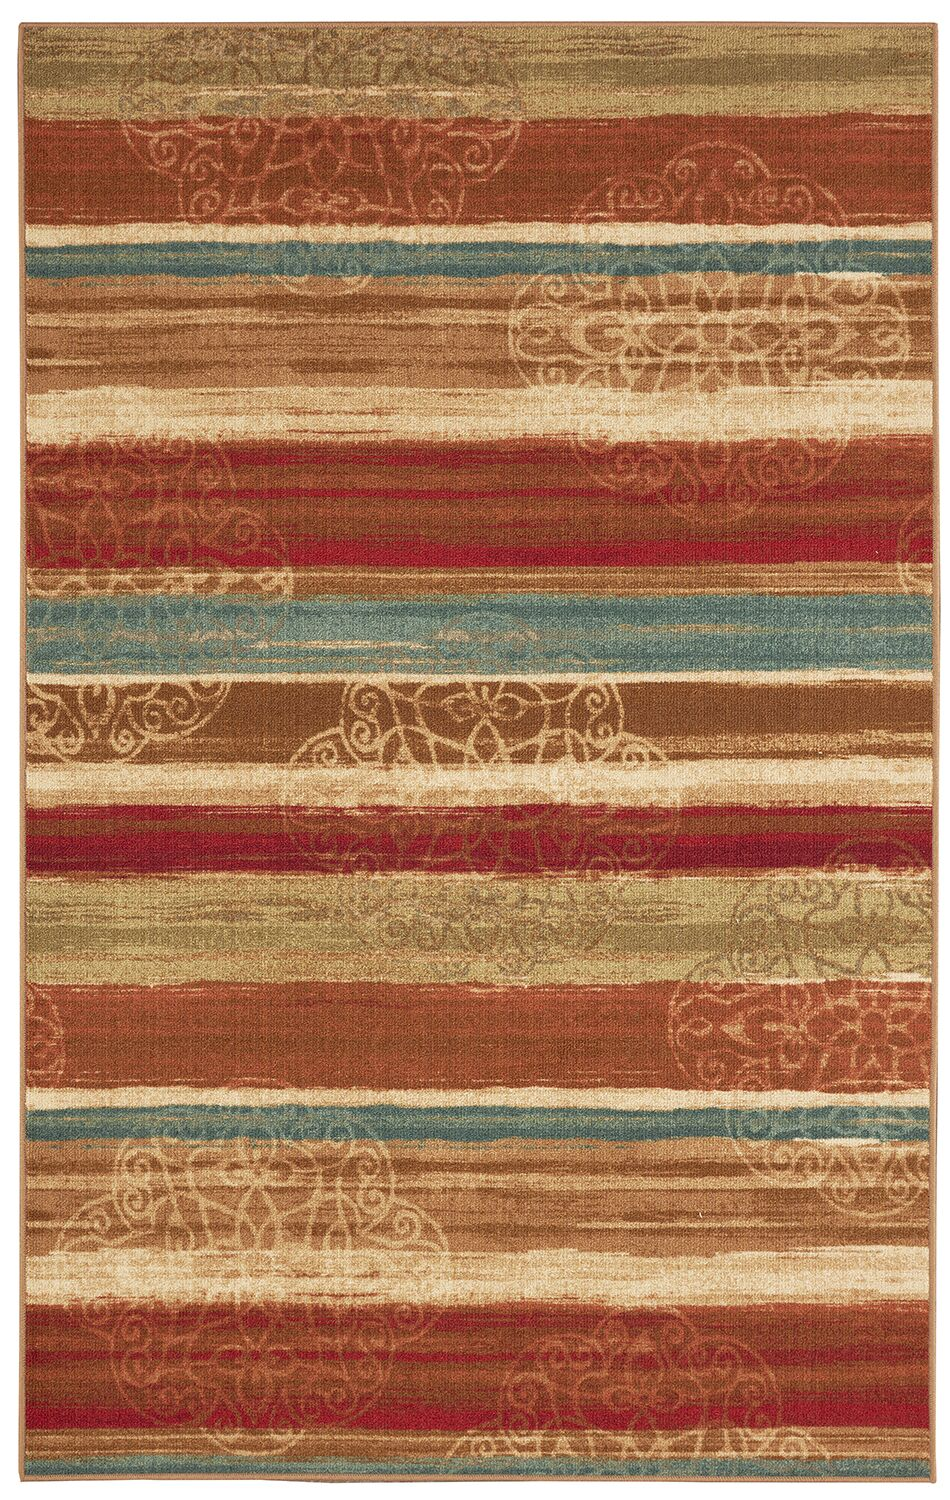 Castellano Red/Beige Area Rug Rug Size: Rectangle 7'6